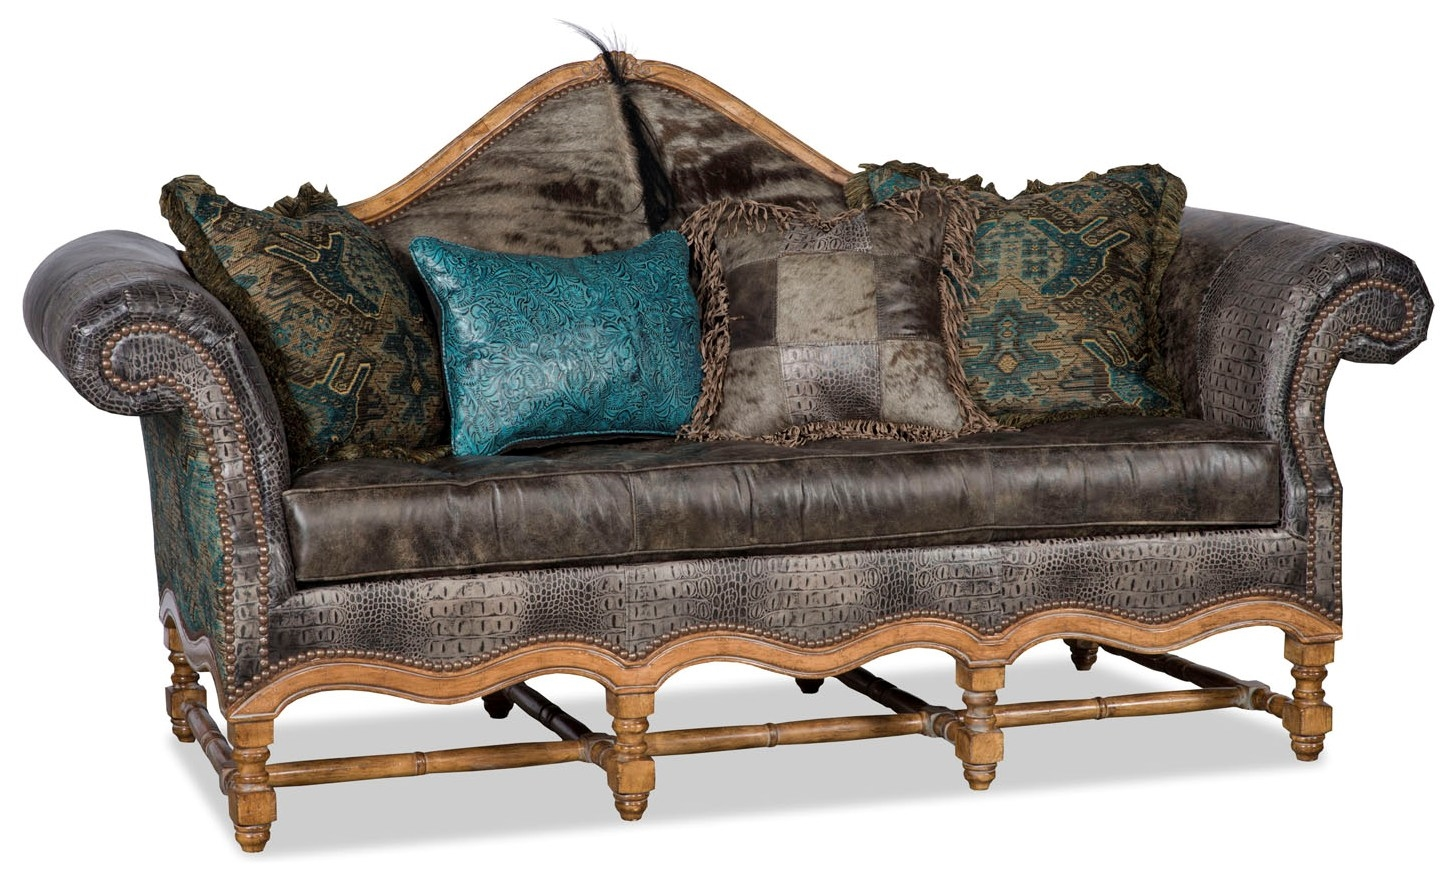 Leather Furniture Traveler Collection: Serengeti Sofa From Our High Plains Drifter Collection